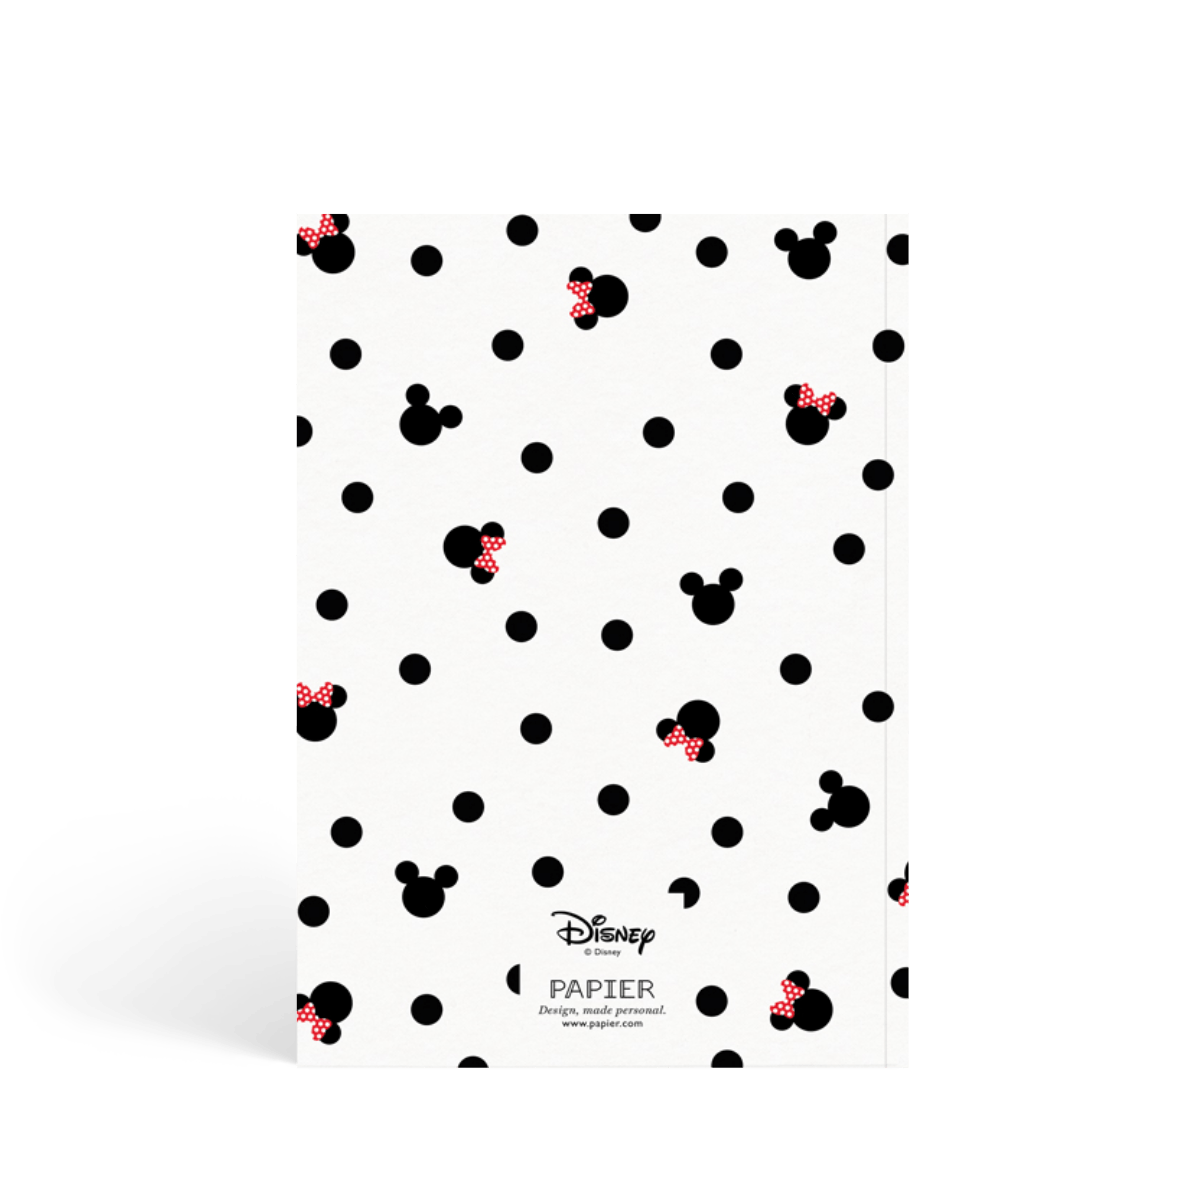 Https%3a%2f%2fwww.papier.com%2fproduct image%2f55819%2f5%2fmickey minnie mouse 13405 back 1570128851.png?ixlib=rb 1.1